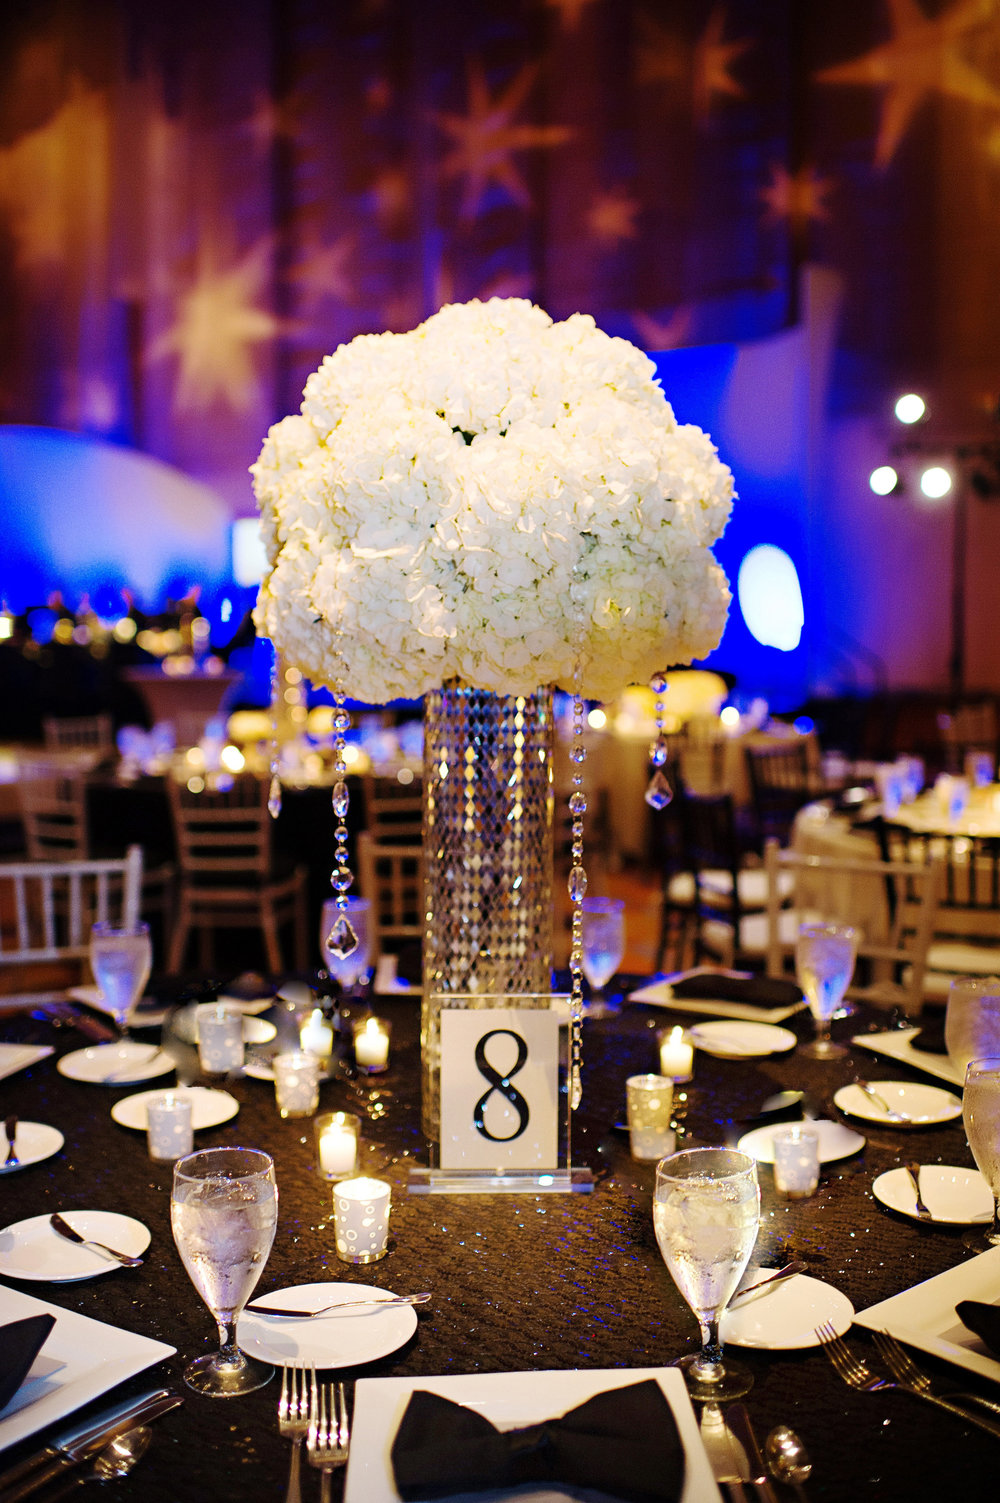 Courtenay Lambert Florals and Event Design, http:courtenaylambert.com.  Wedding of Sarah Haas & David Habel at Duke Energy Center in Cincinnati Ohio.  Gorgeous photography by Kortnee Kate, and flowers and event design by Courtenay Lambert Floral and Event Design. White Hydrangea. Glitter. Sparkle. Christmas Wedding. Wedding florist and designer Cincinnati